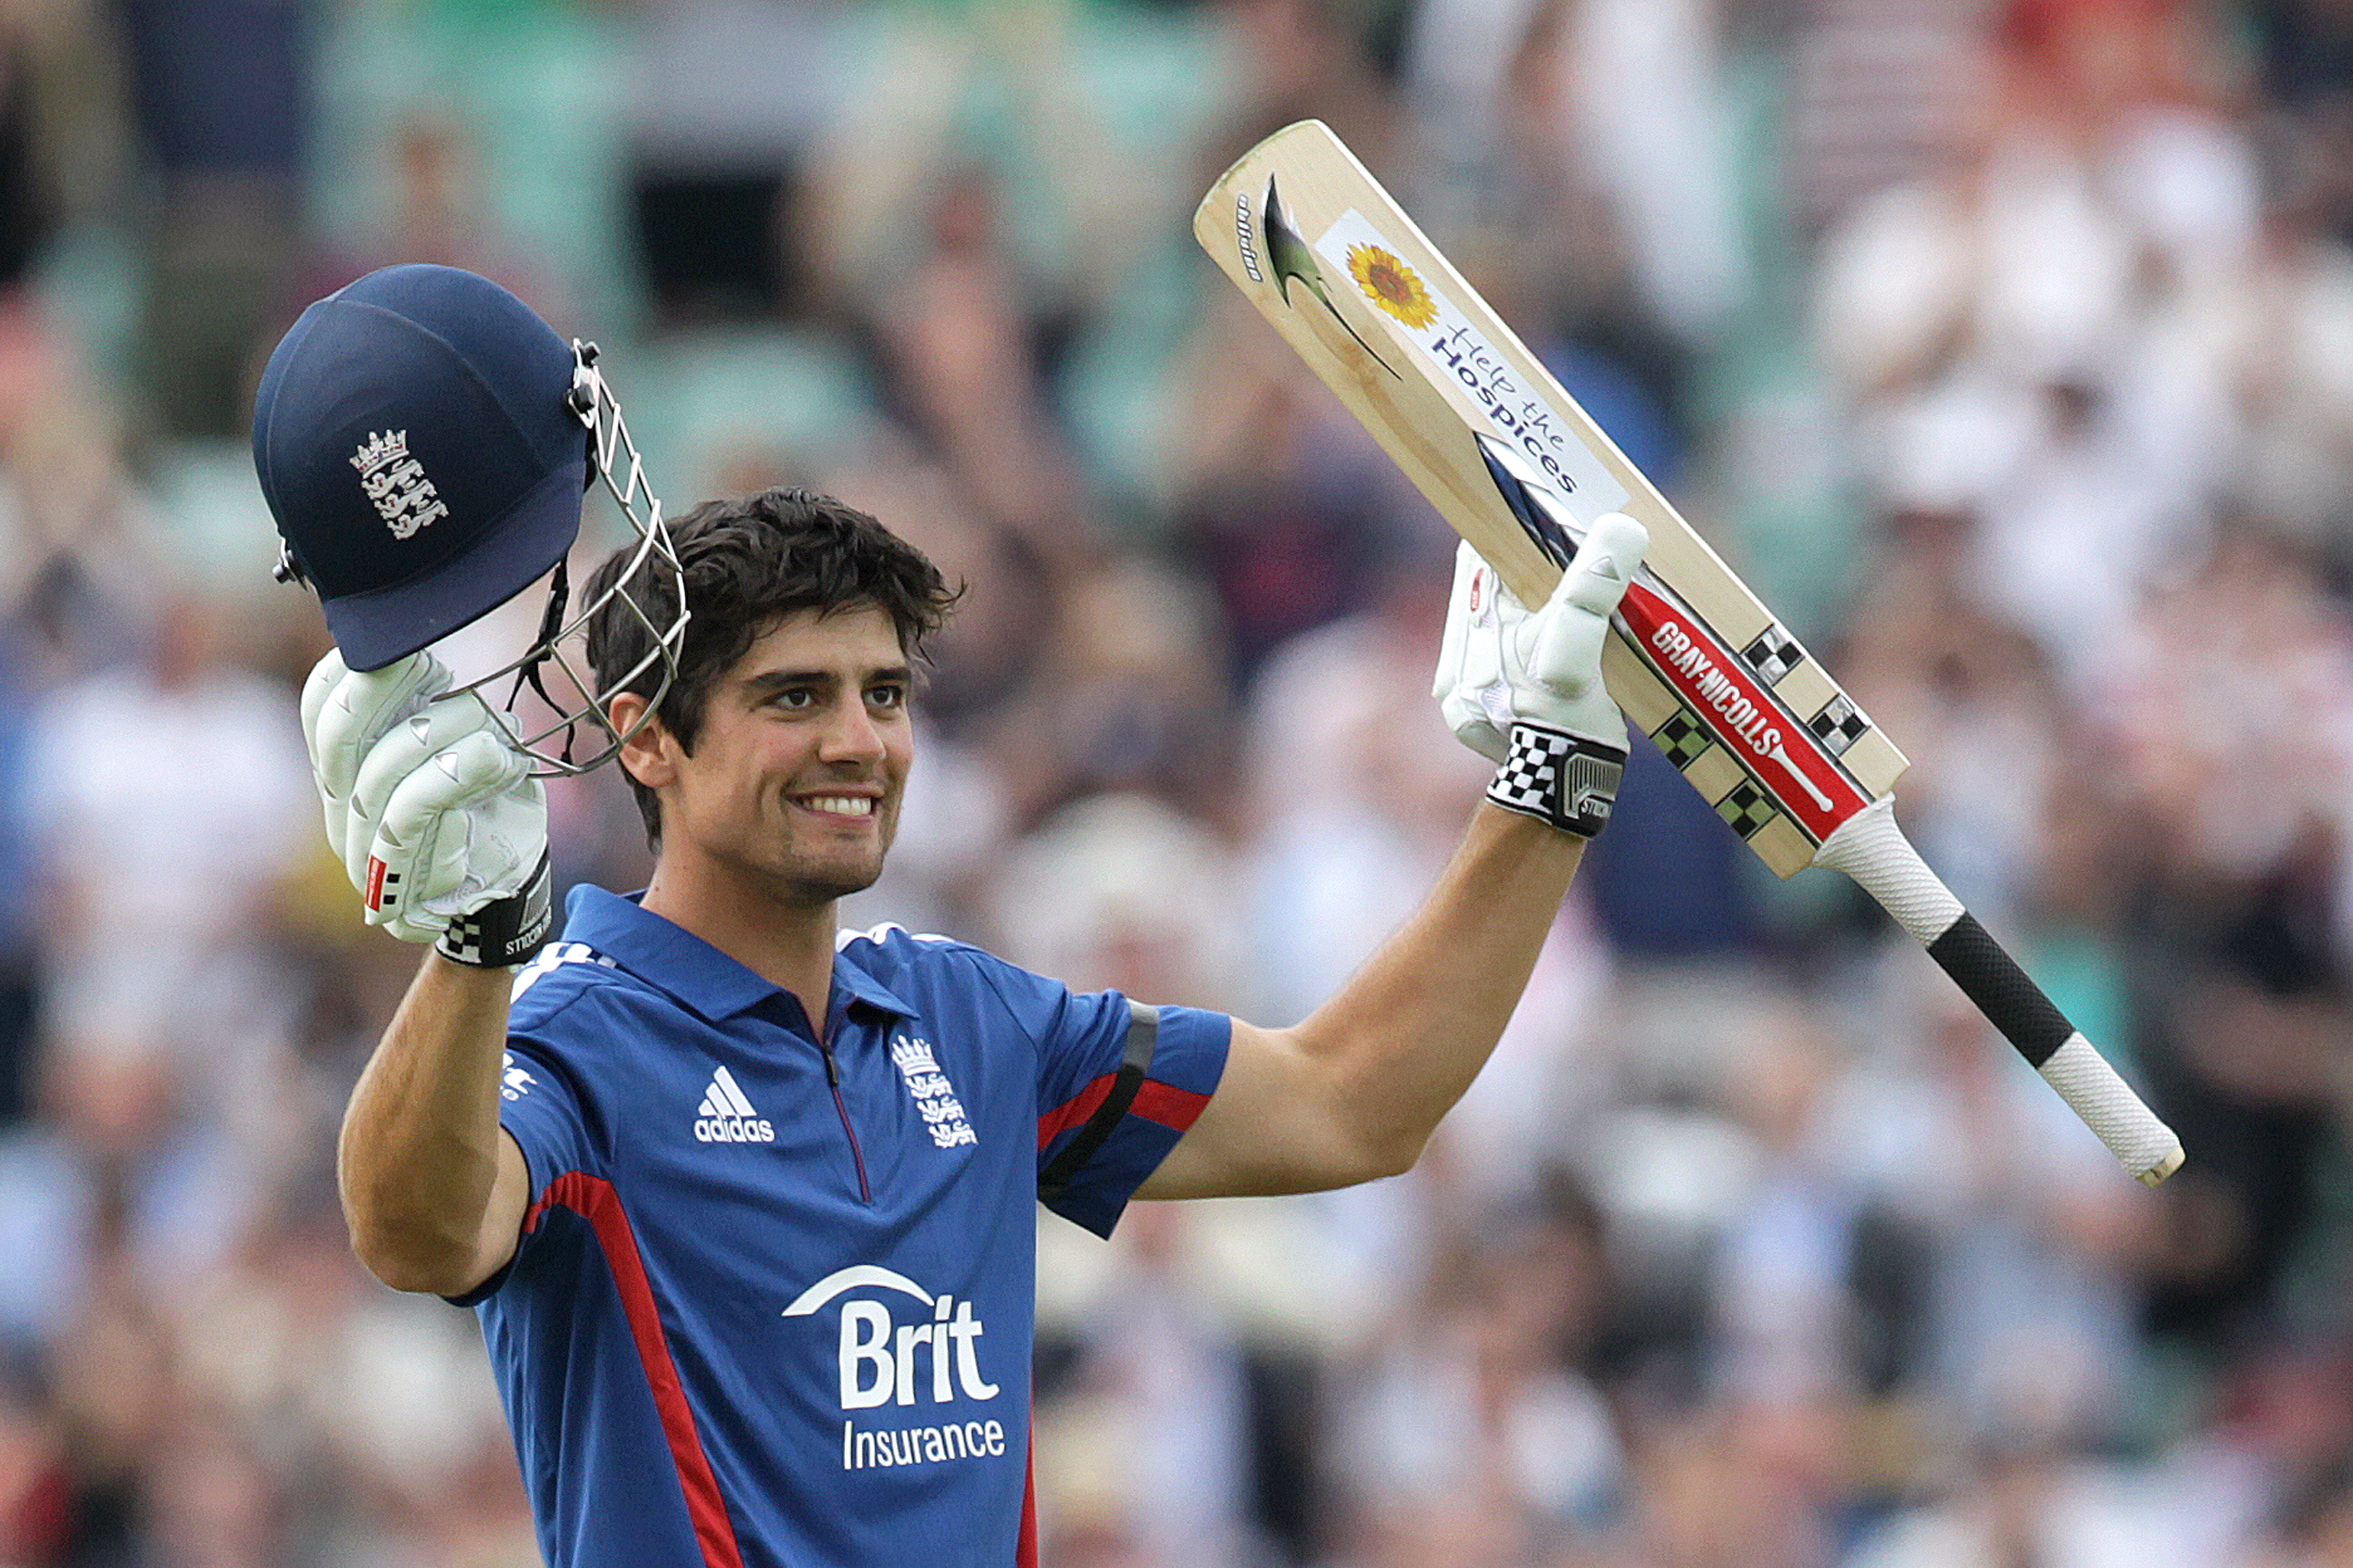 Alastair Cook of England celebrates after he reaches his century during the second one-day international (ODI) cricket match between England and the West Indies at the Oval in London on June 19, 2012. AFP PHOTO / RICHARD WASHBROOKE  -   RESTRICTED TO EDITORIAL USE. NO ASSOCIATION WITH DIRECT COMPETITOR OF SPONSOR, PARTNER, OR SUPPLIER OF THE ECB        (Photo credit should read RICHARD WASHBROOKE/AFP/GettyImages)